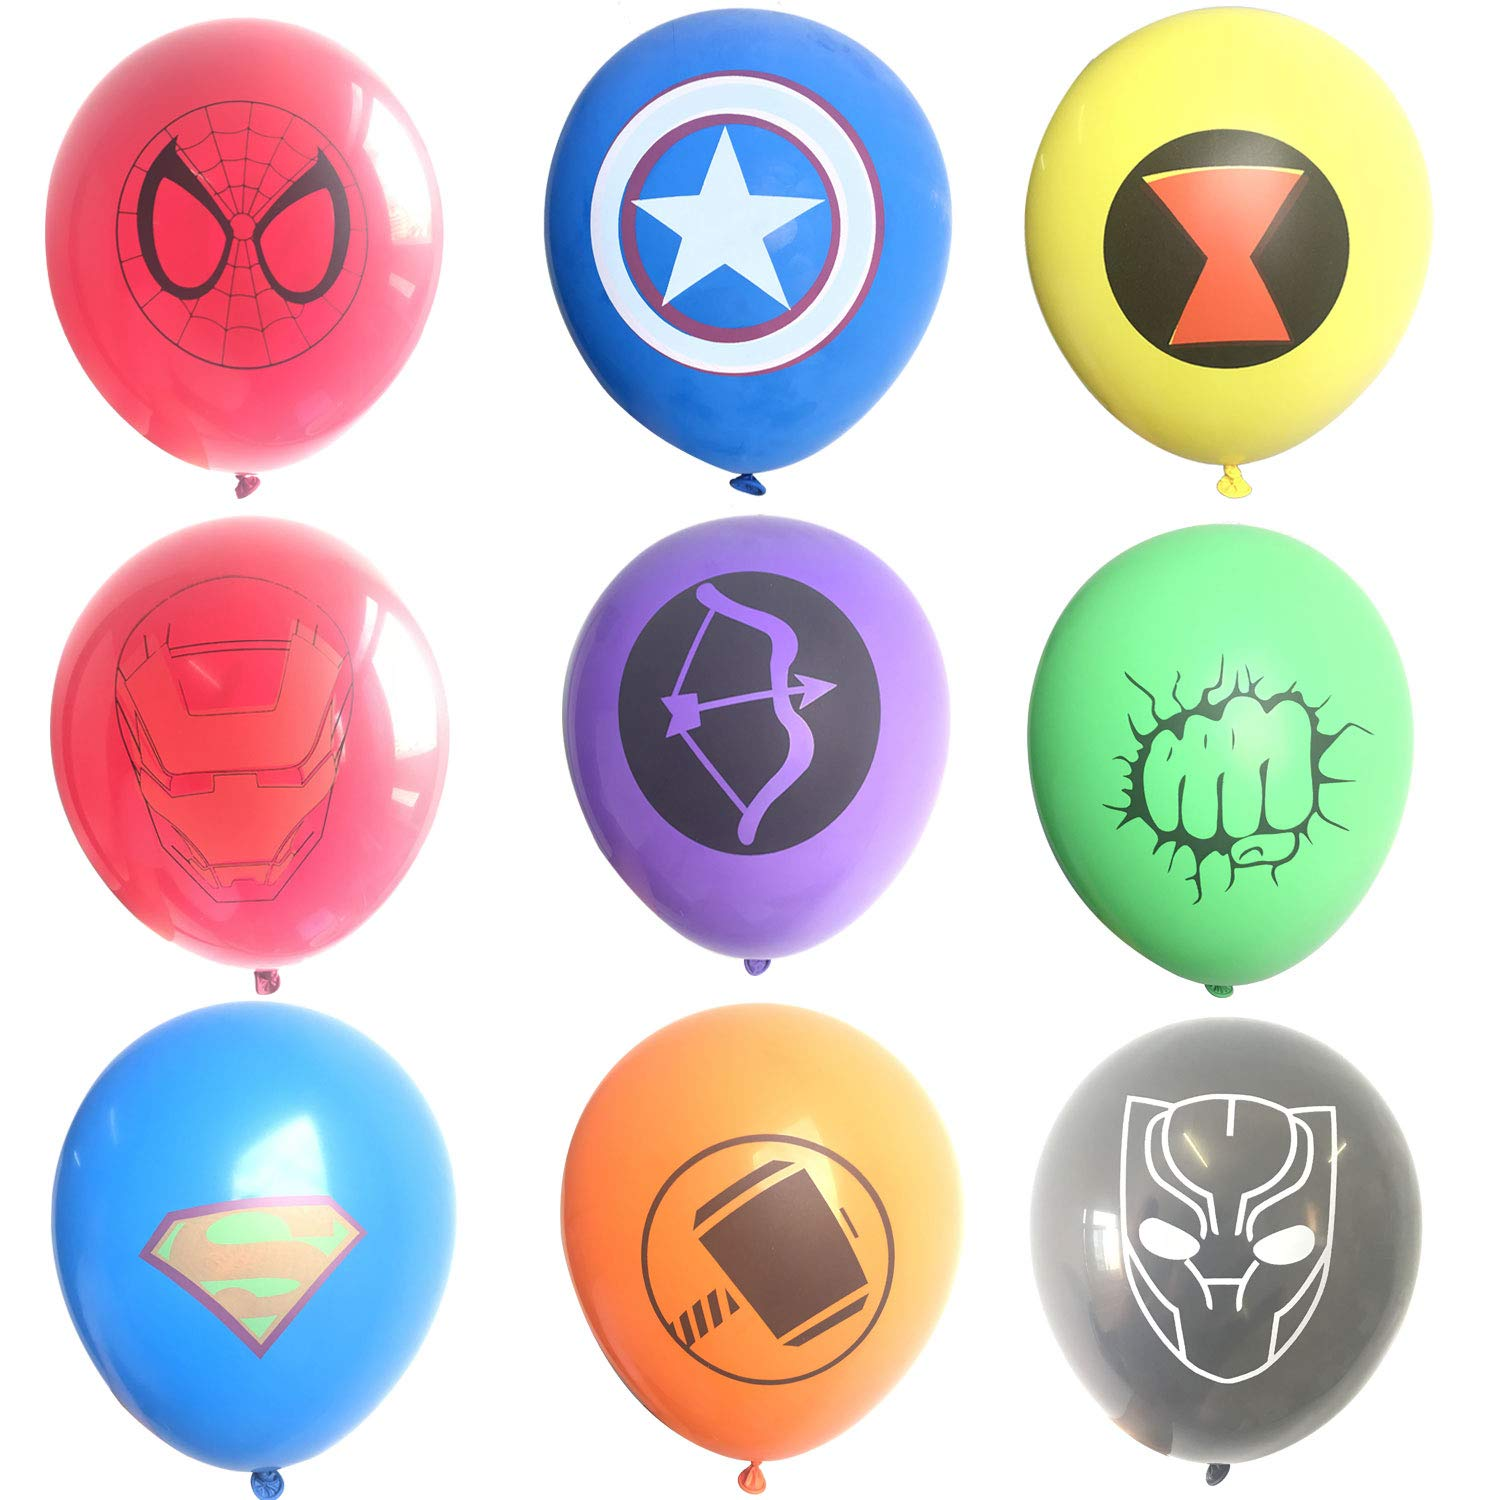 45 Pcs Superhero Latex Balloons,Children's Birthday Party Supplies,Avenger Superhero Balloon Decorations(9 Color Balloons)